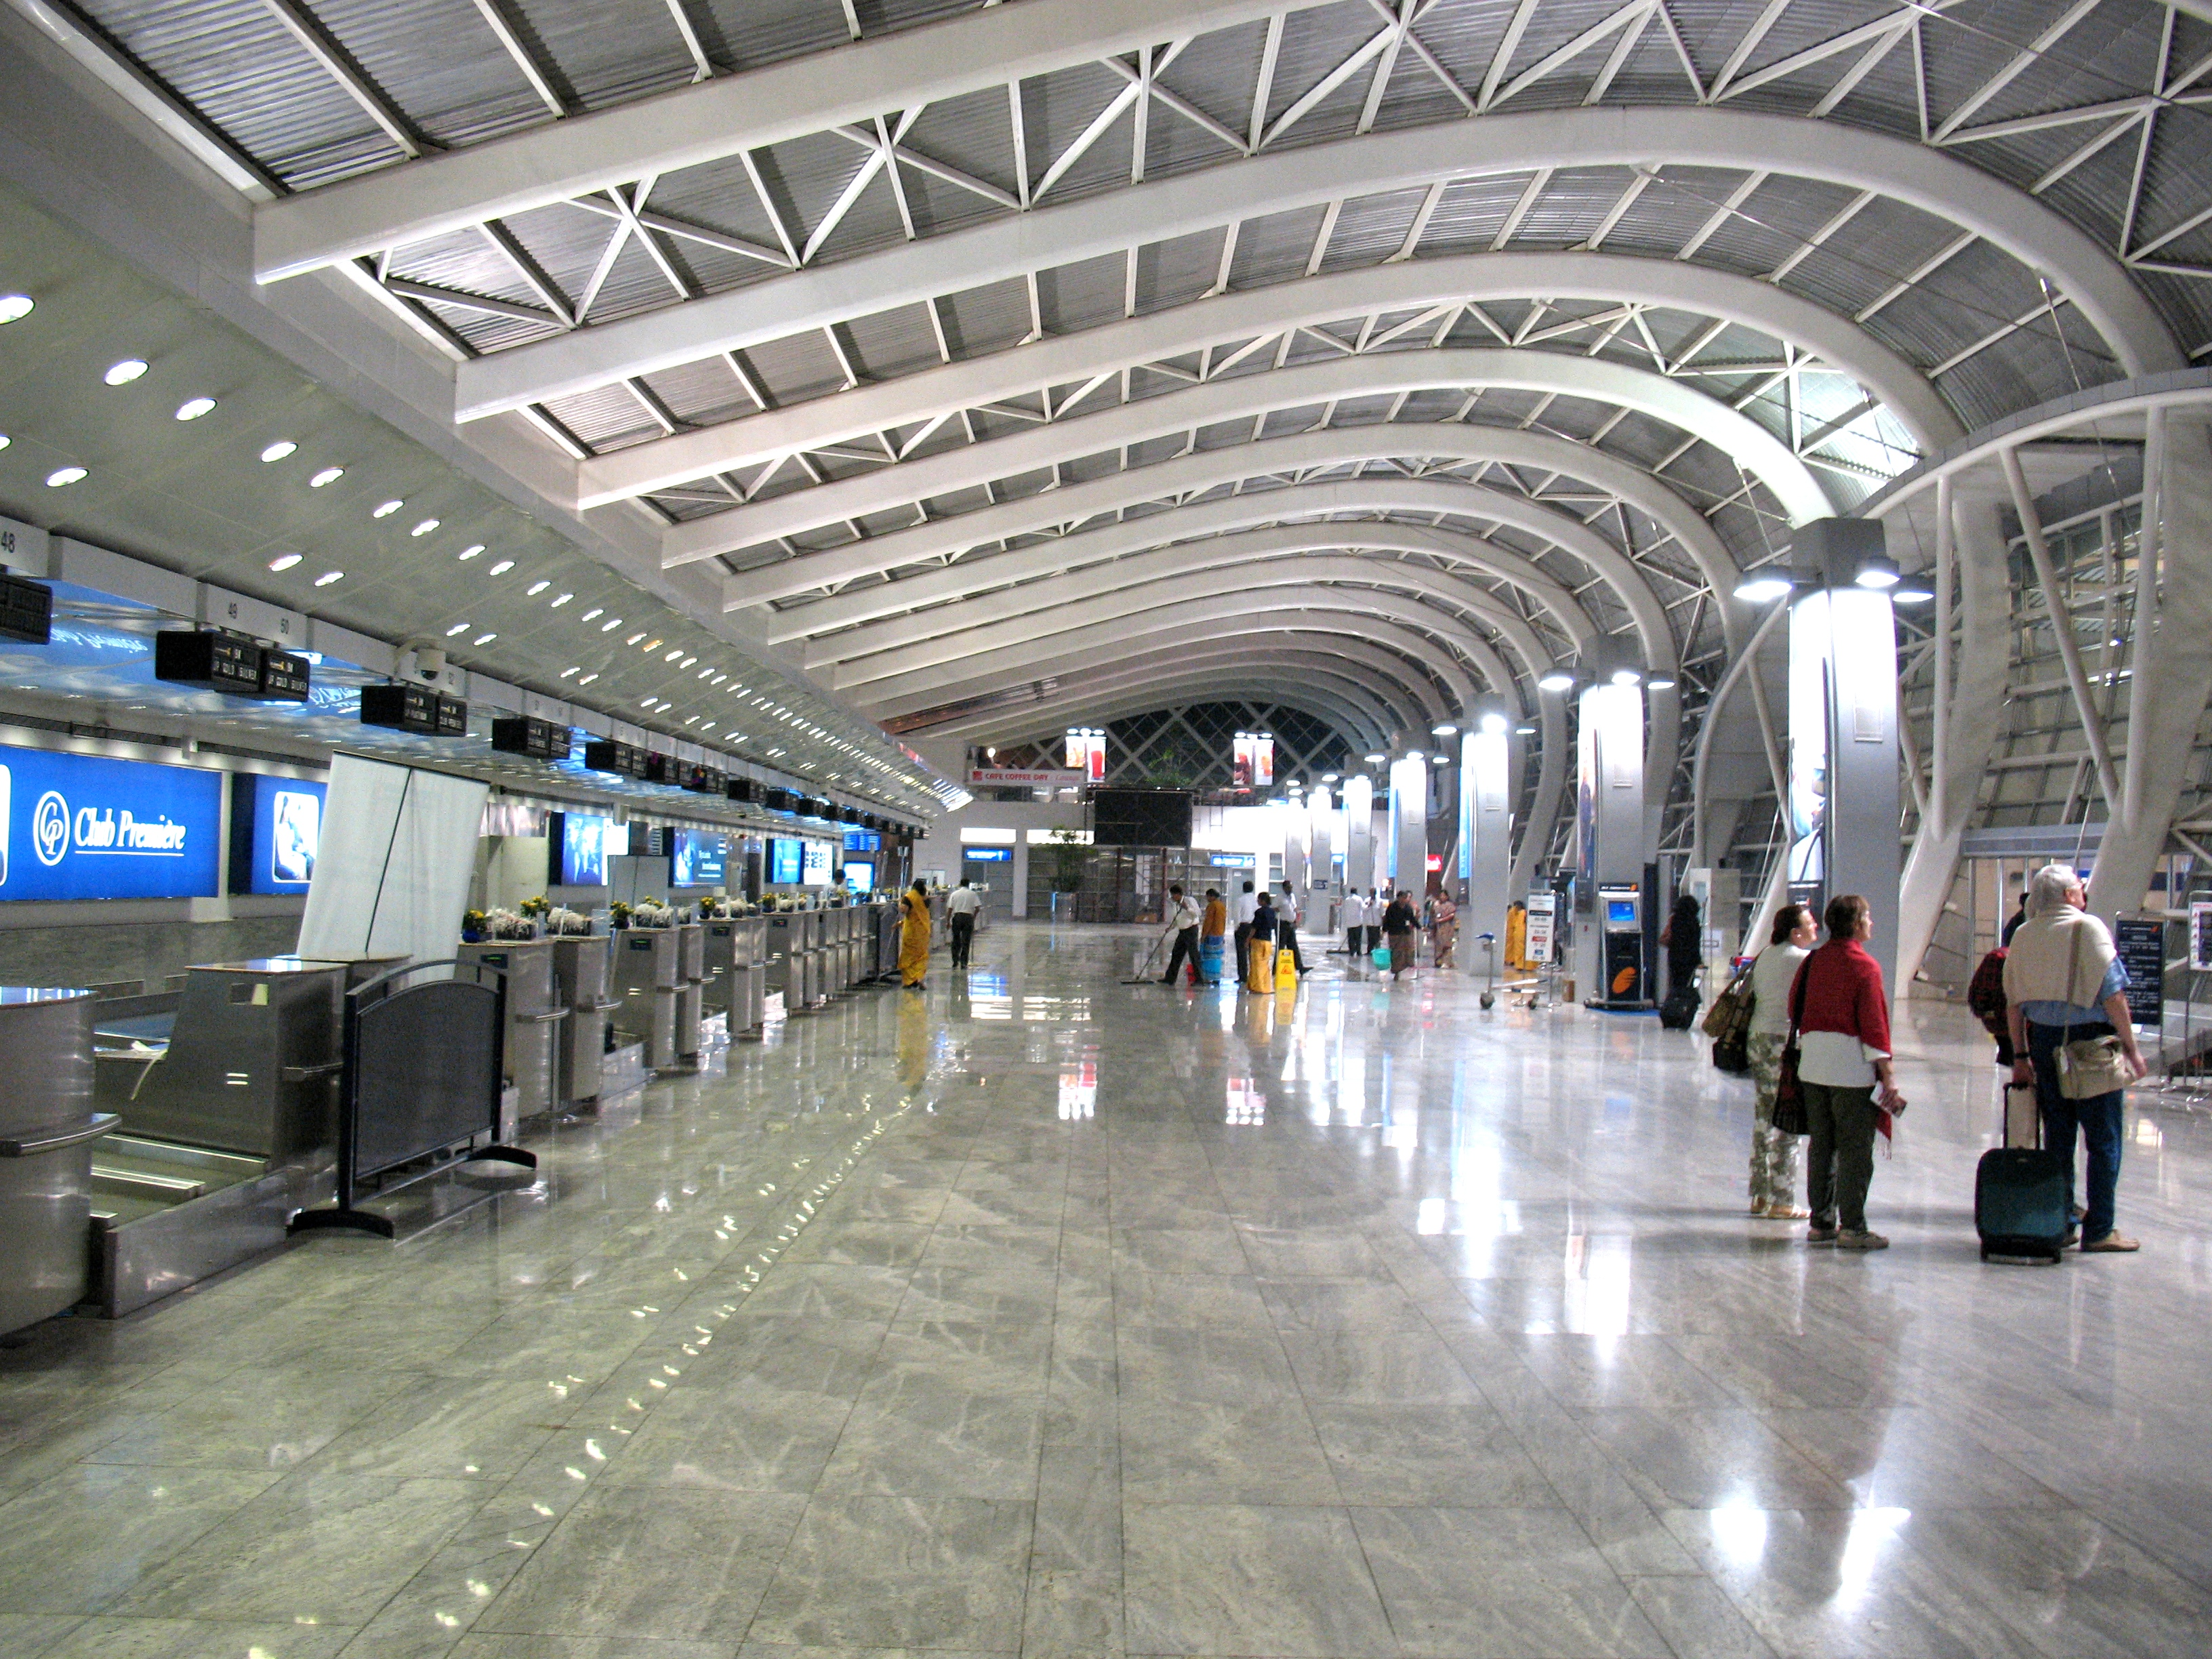 Mumbai's Chhatrapati Shivaji International Airport. Photo courtesy: Wiki